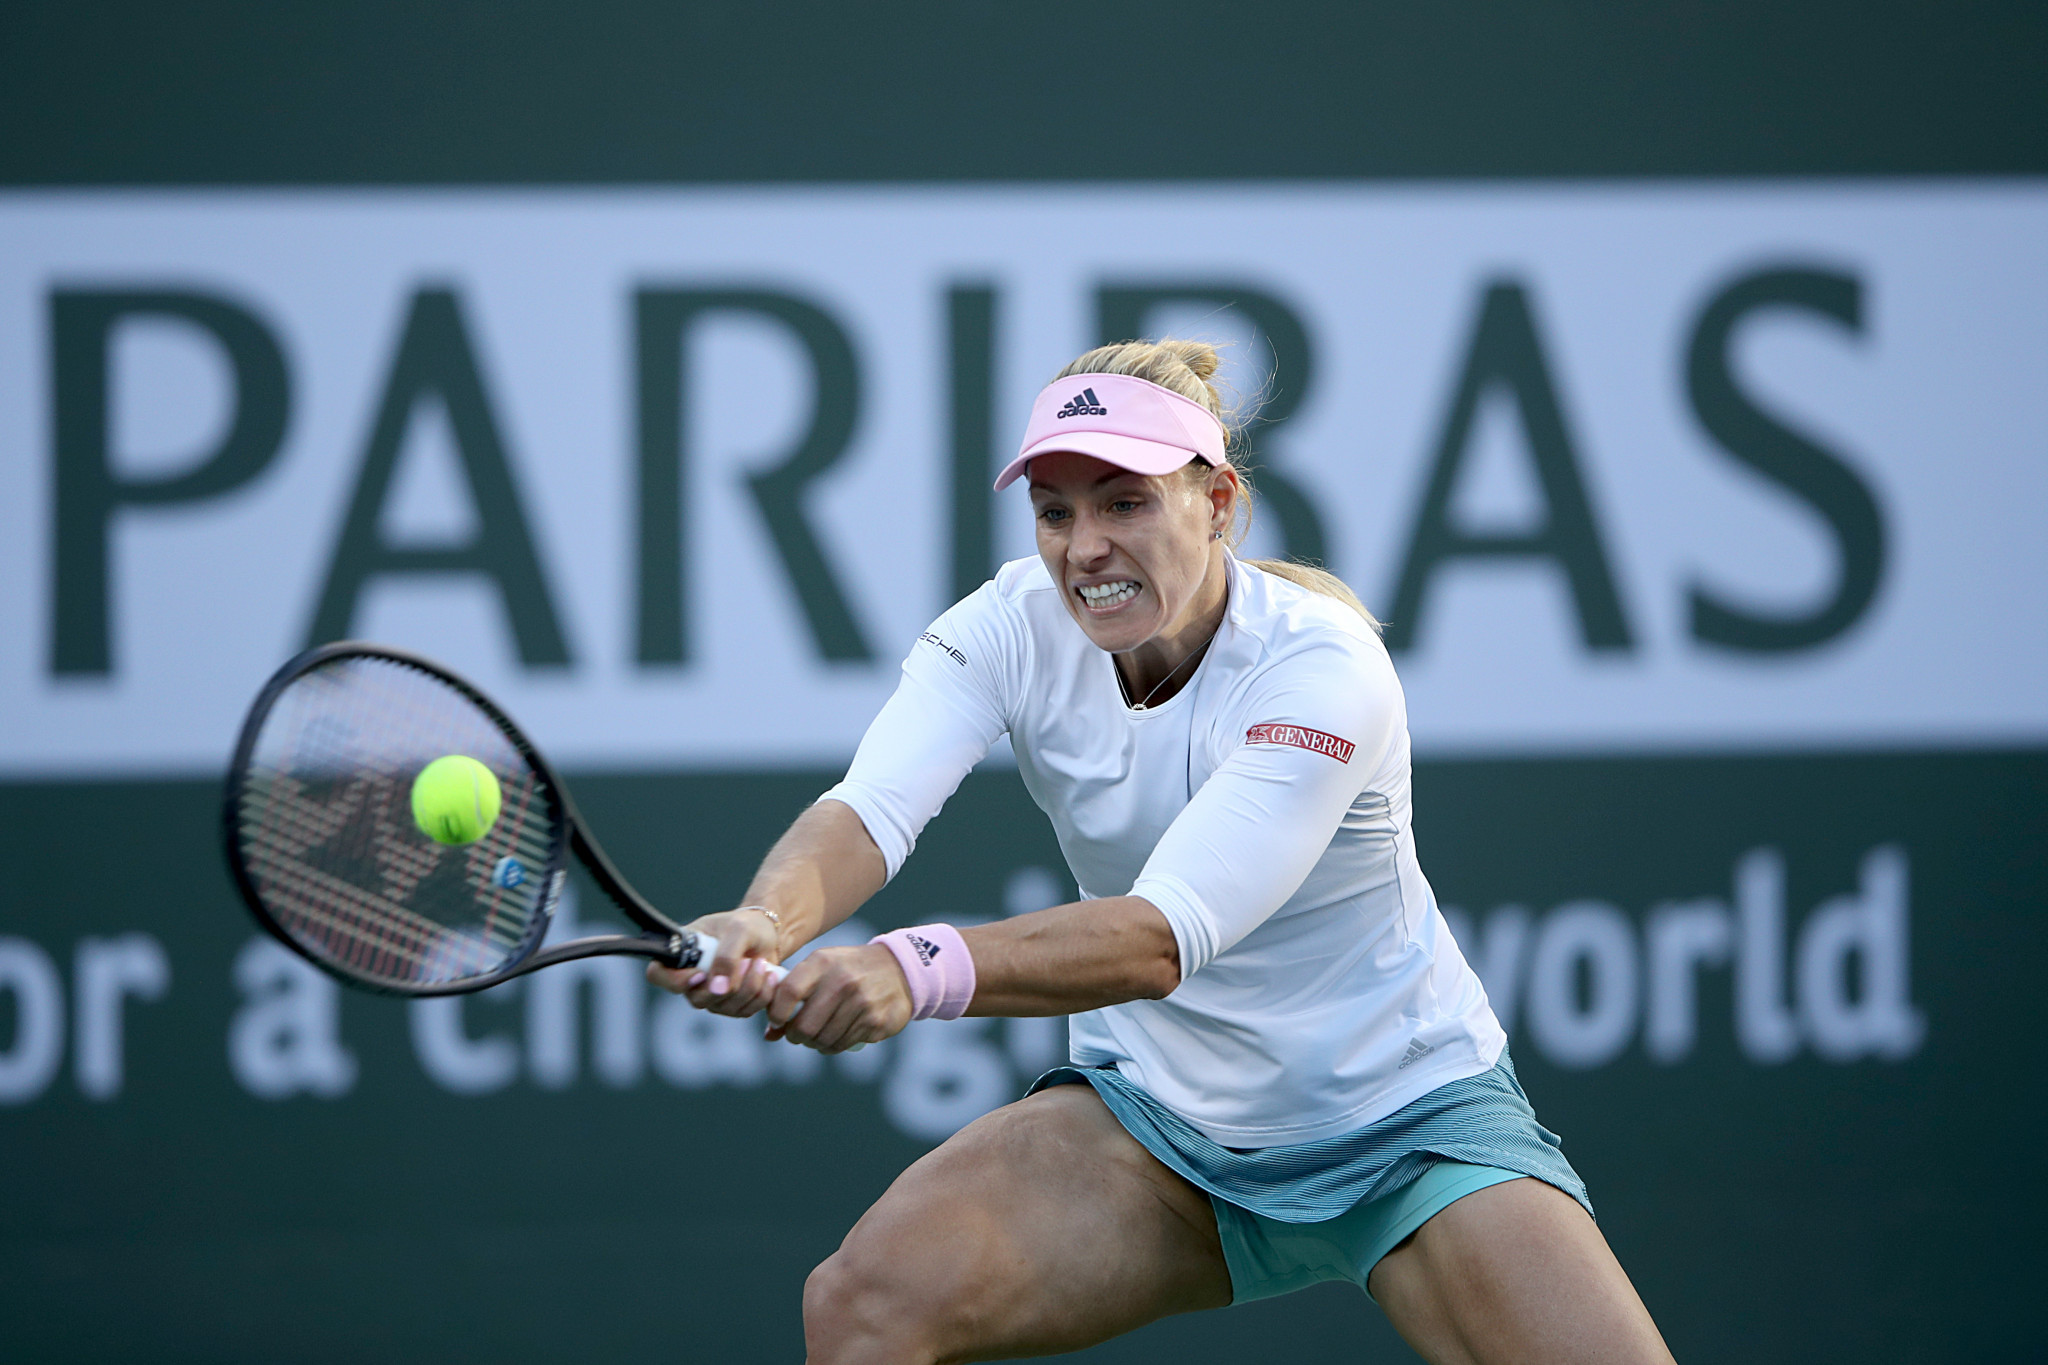 Germany's Angelique Kerber en route to victory over Venus Williams at the Indian Wells Masters in California ©Getty Images